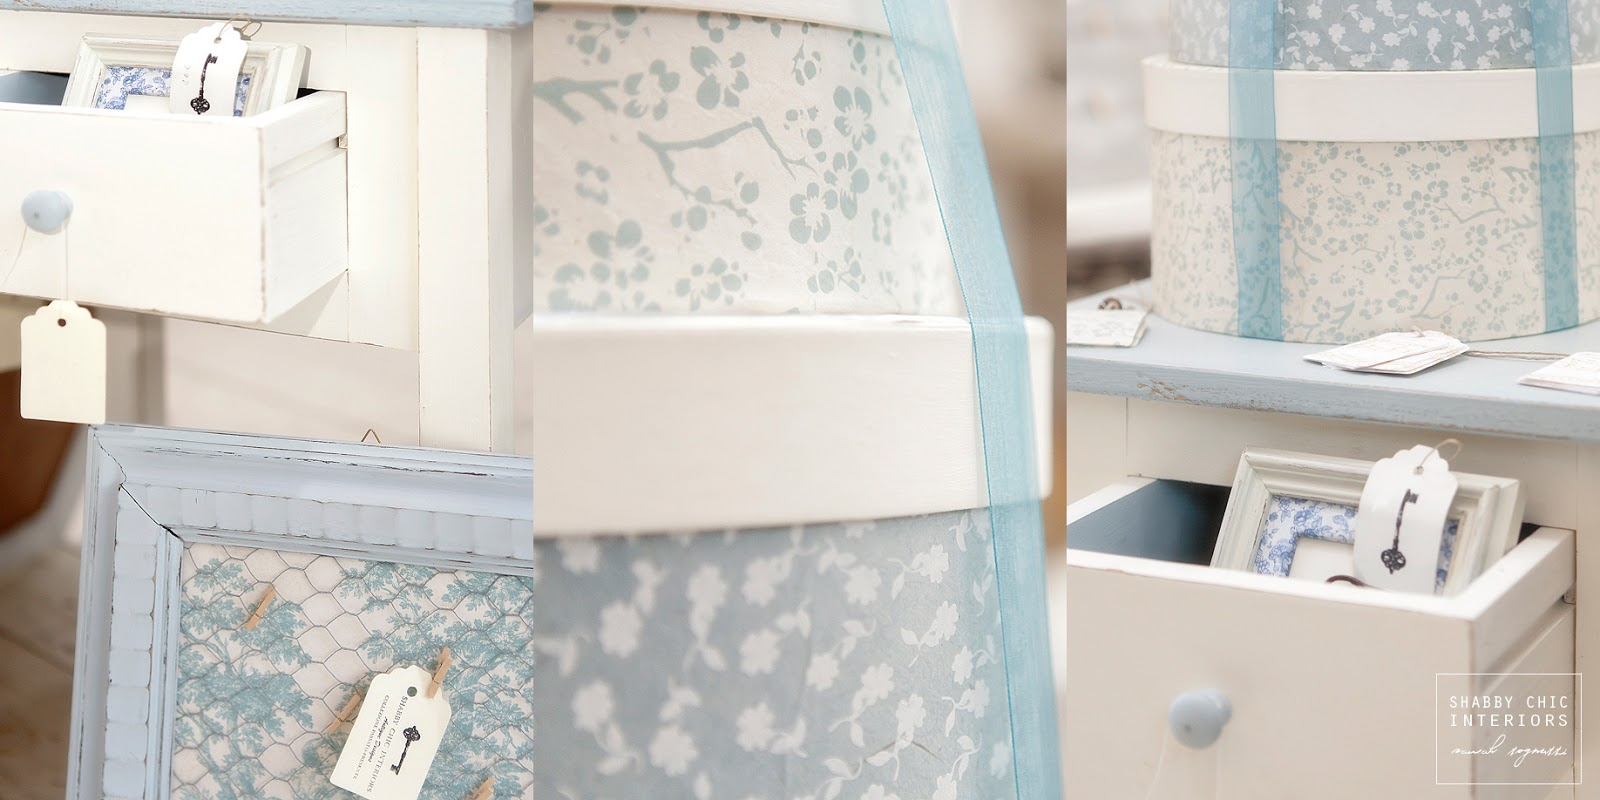 Corsi prima dell\'estate - Shabby Chic Interiors